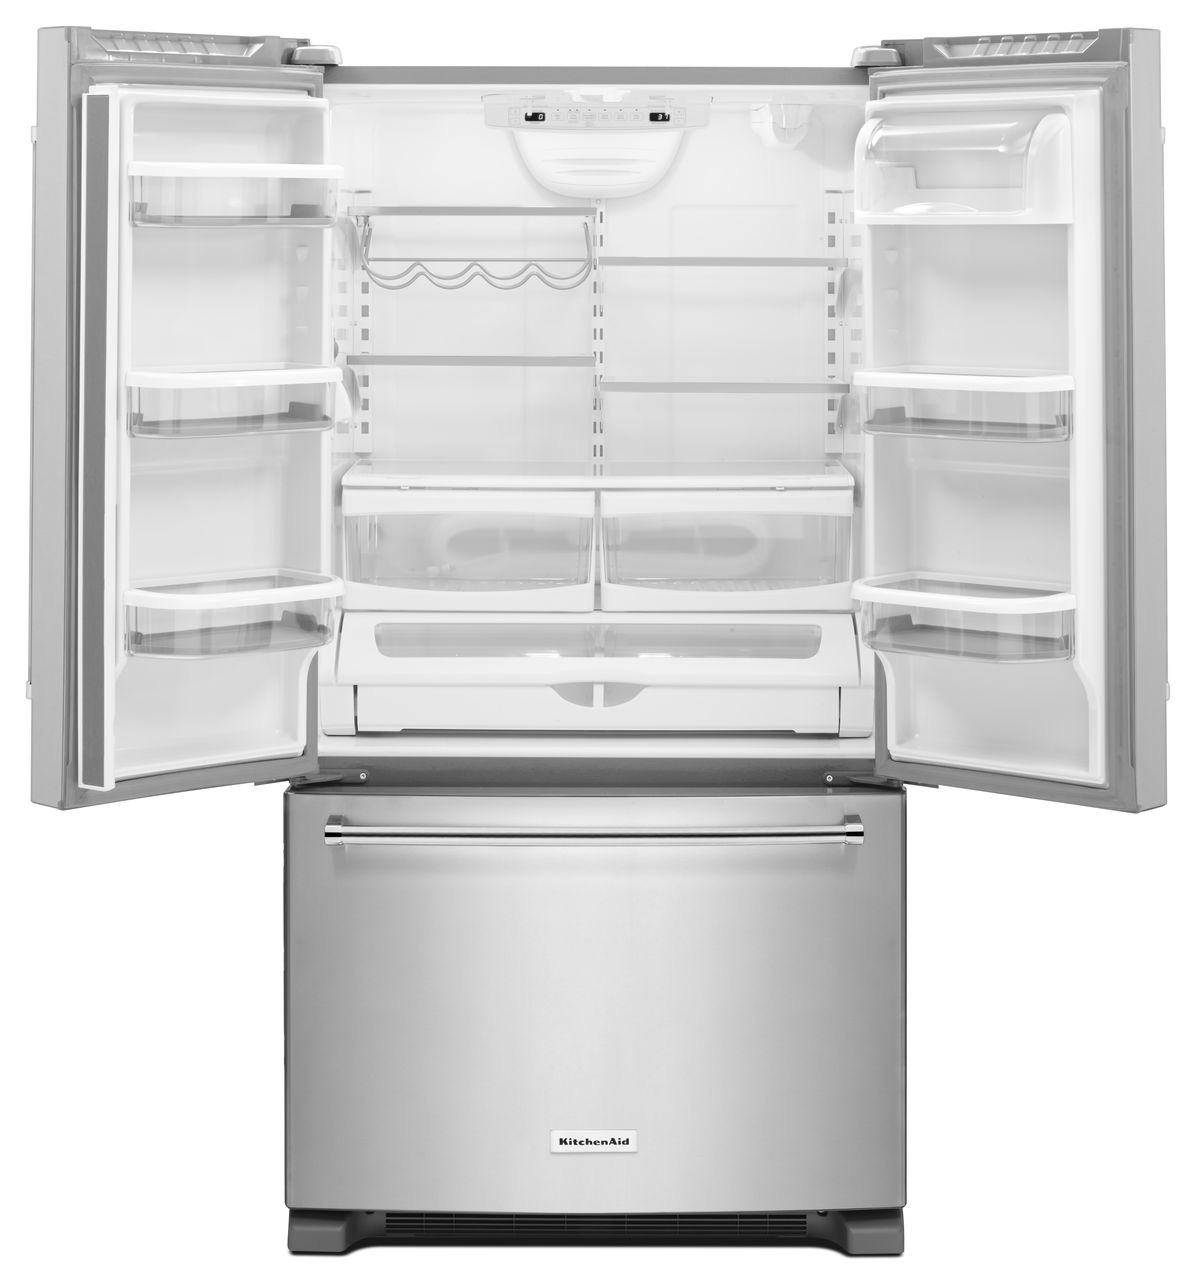 White Kitchenaid kitchenaid white french door refrigerator - krfc300ewh